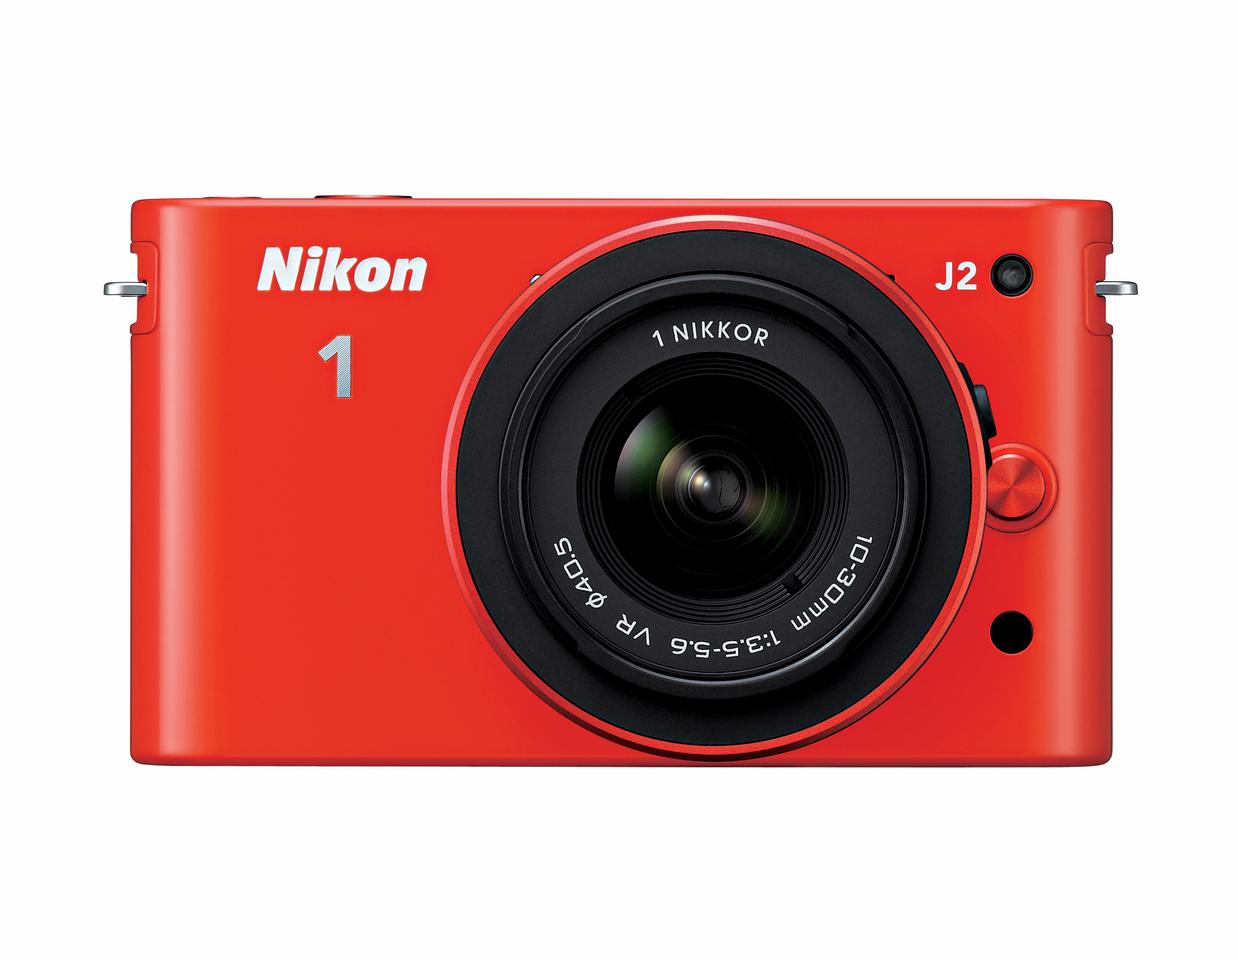 The new Nikon 1 J2 has been given the same 10.1-megapixel CX-format CMOS sensor, EXPEED 3 dual-core image processing engine and ISO range as the J1 before it